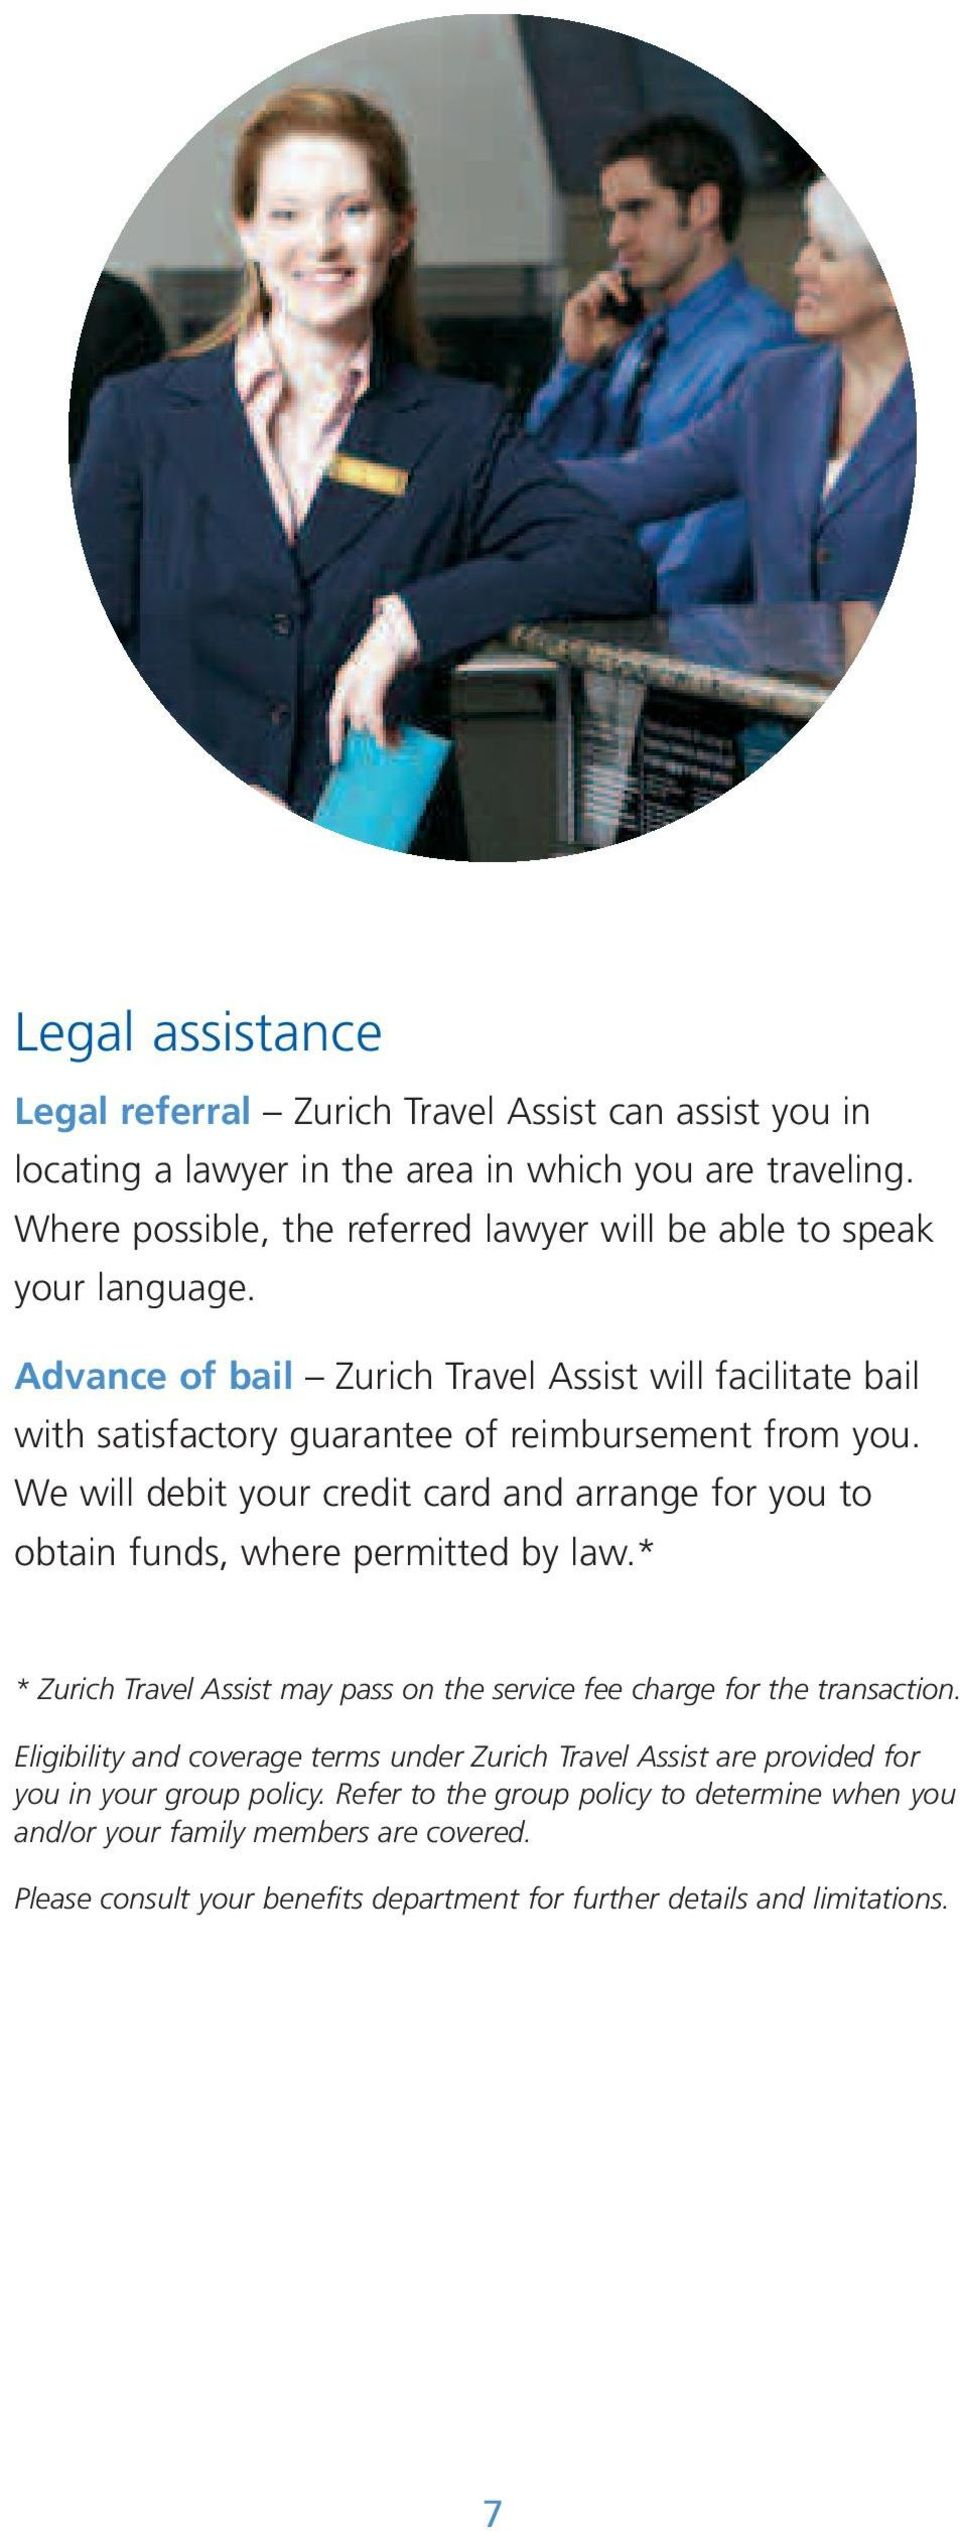 We will debit your credit card and arrange for you to obtain funds, where permitted by law.* * Zurich Travel Assist may pass on the service fee charge for the transaction.